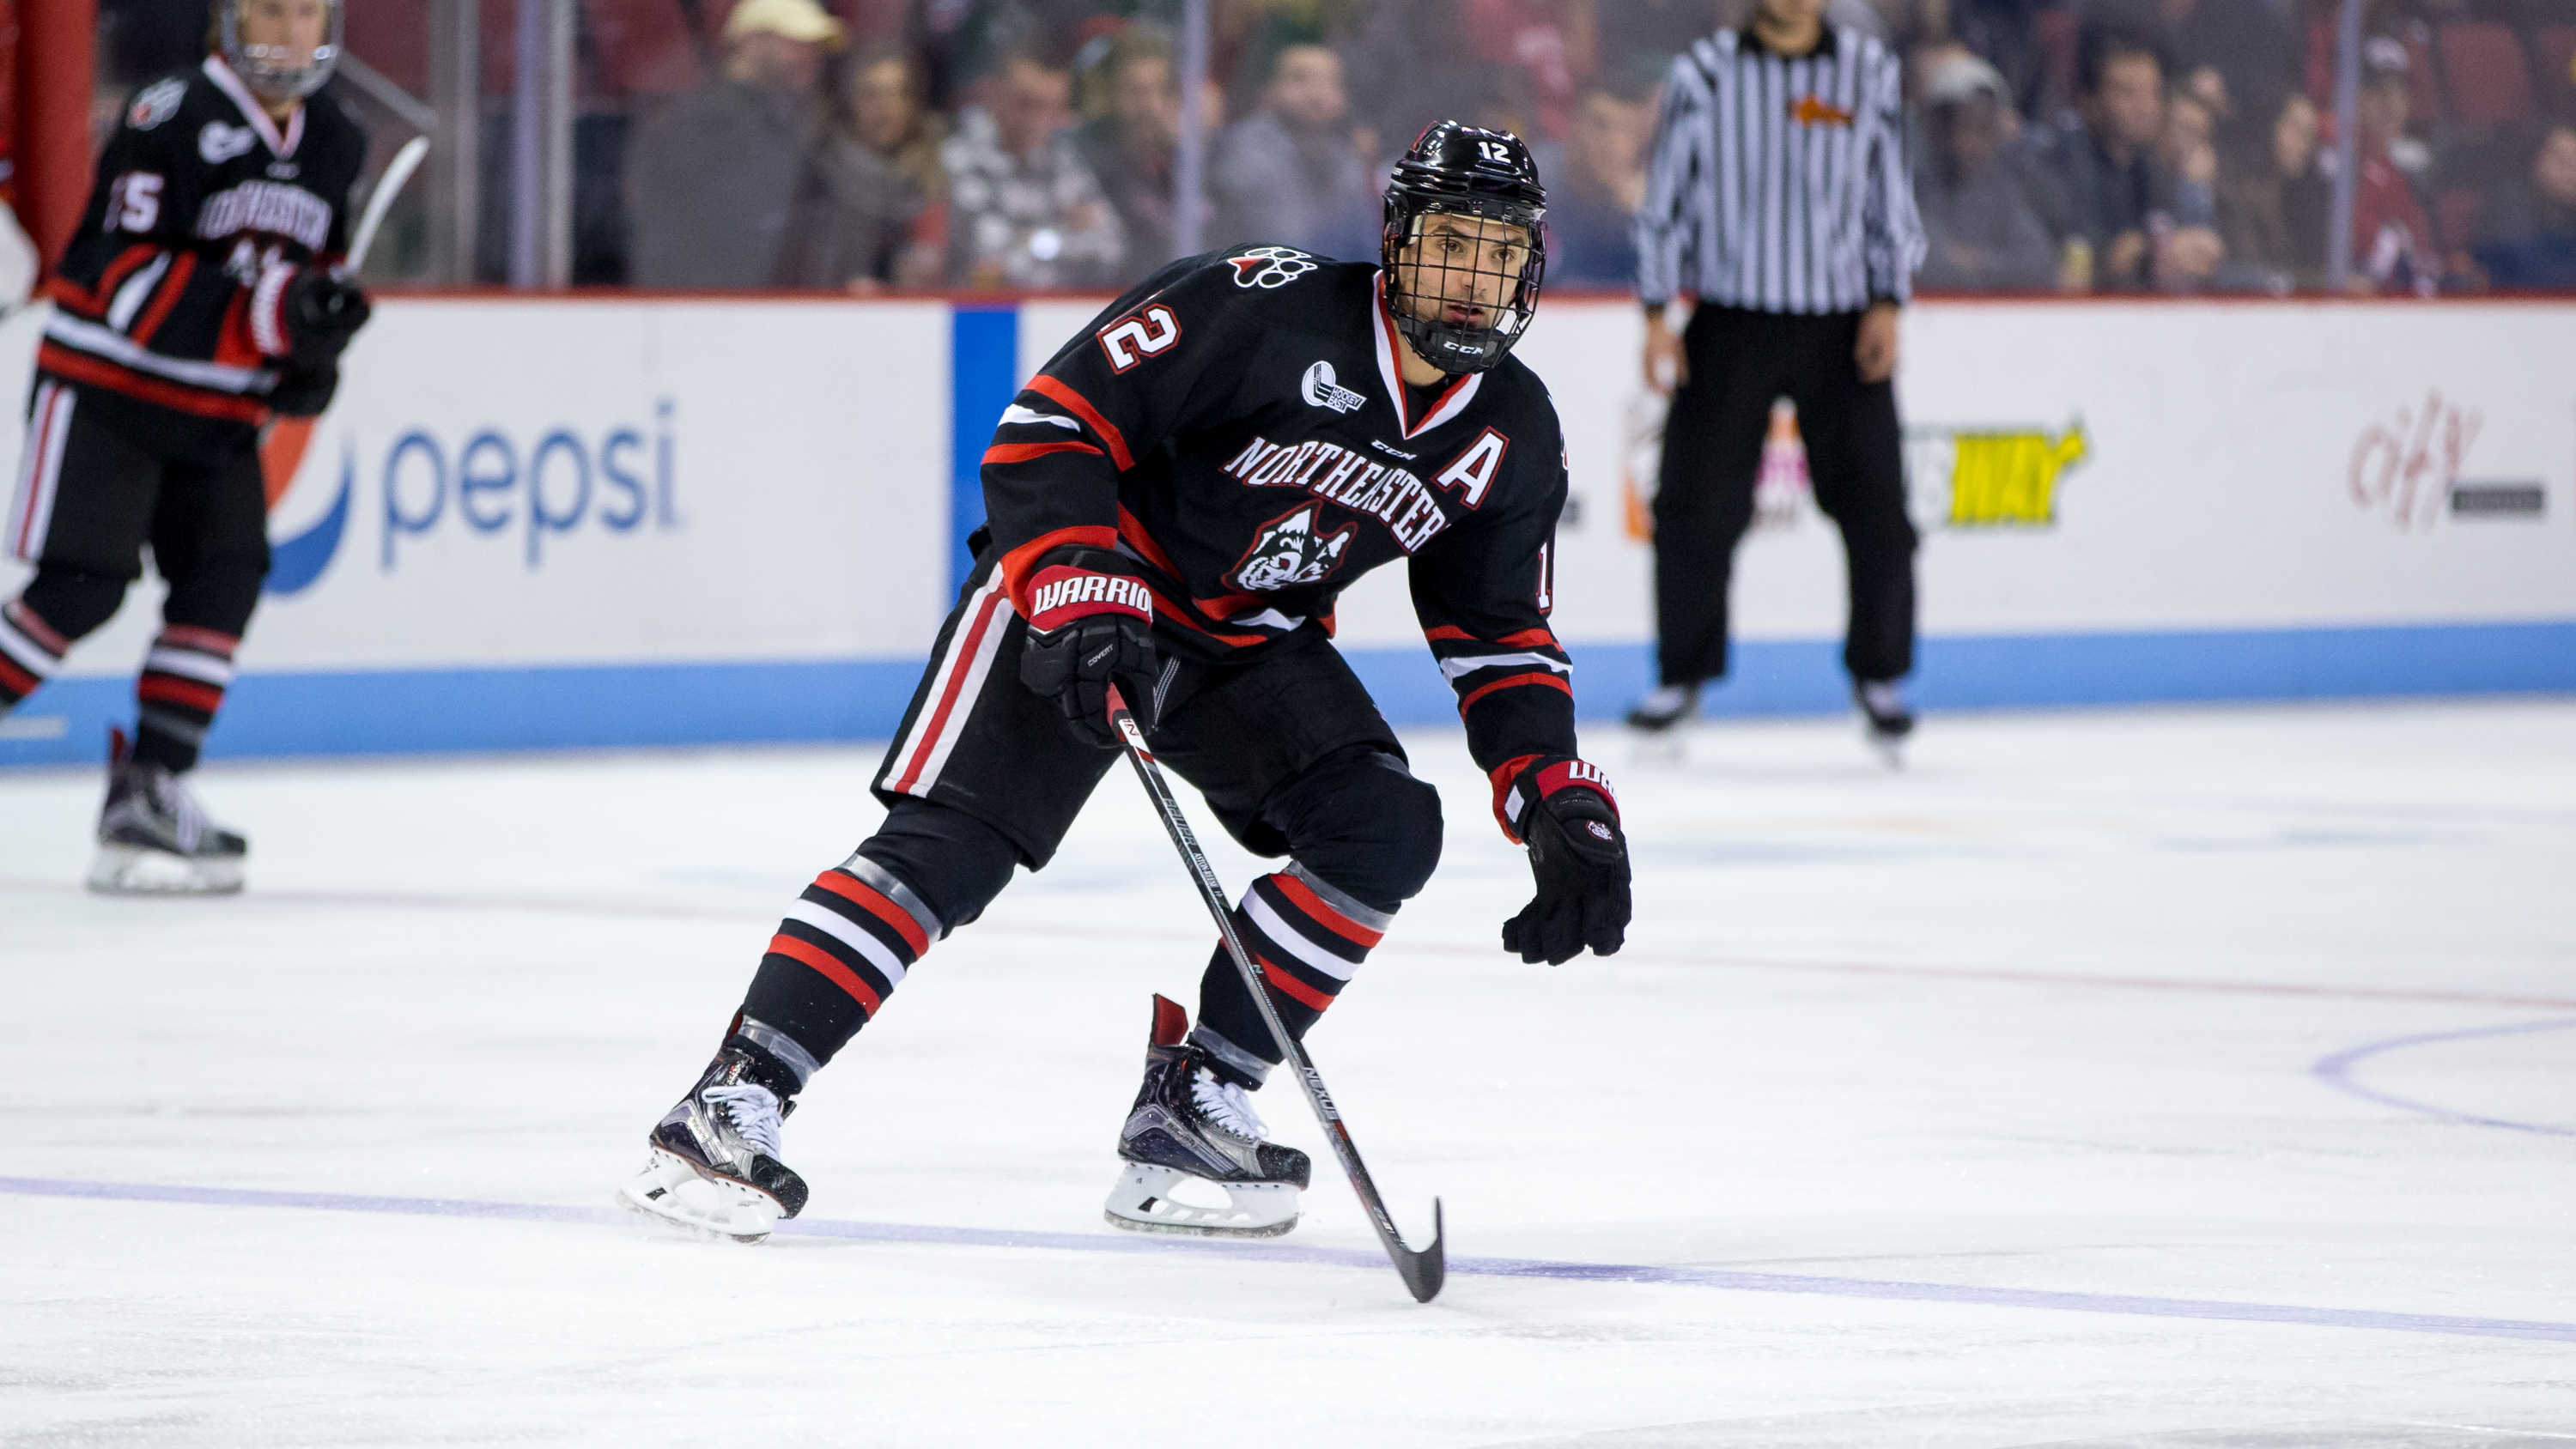 Hockey East: Northeastern's Aston-Reese Developing Into Top NHL Free Agent Target